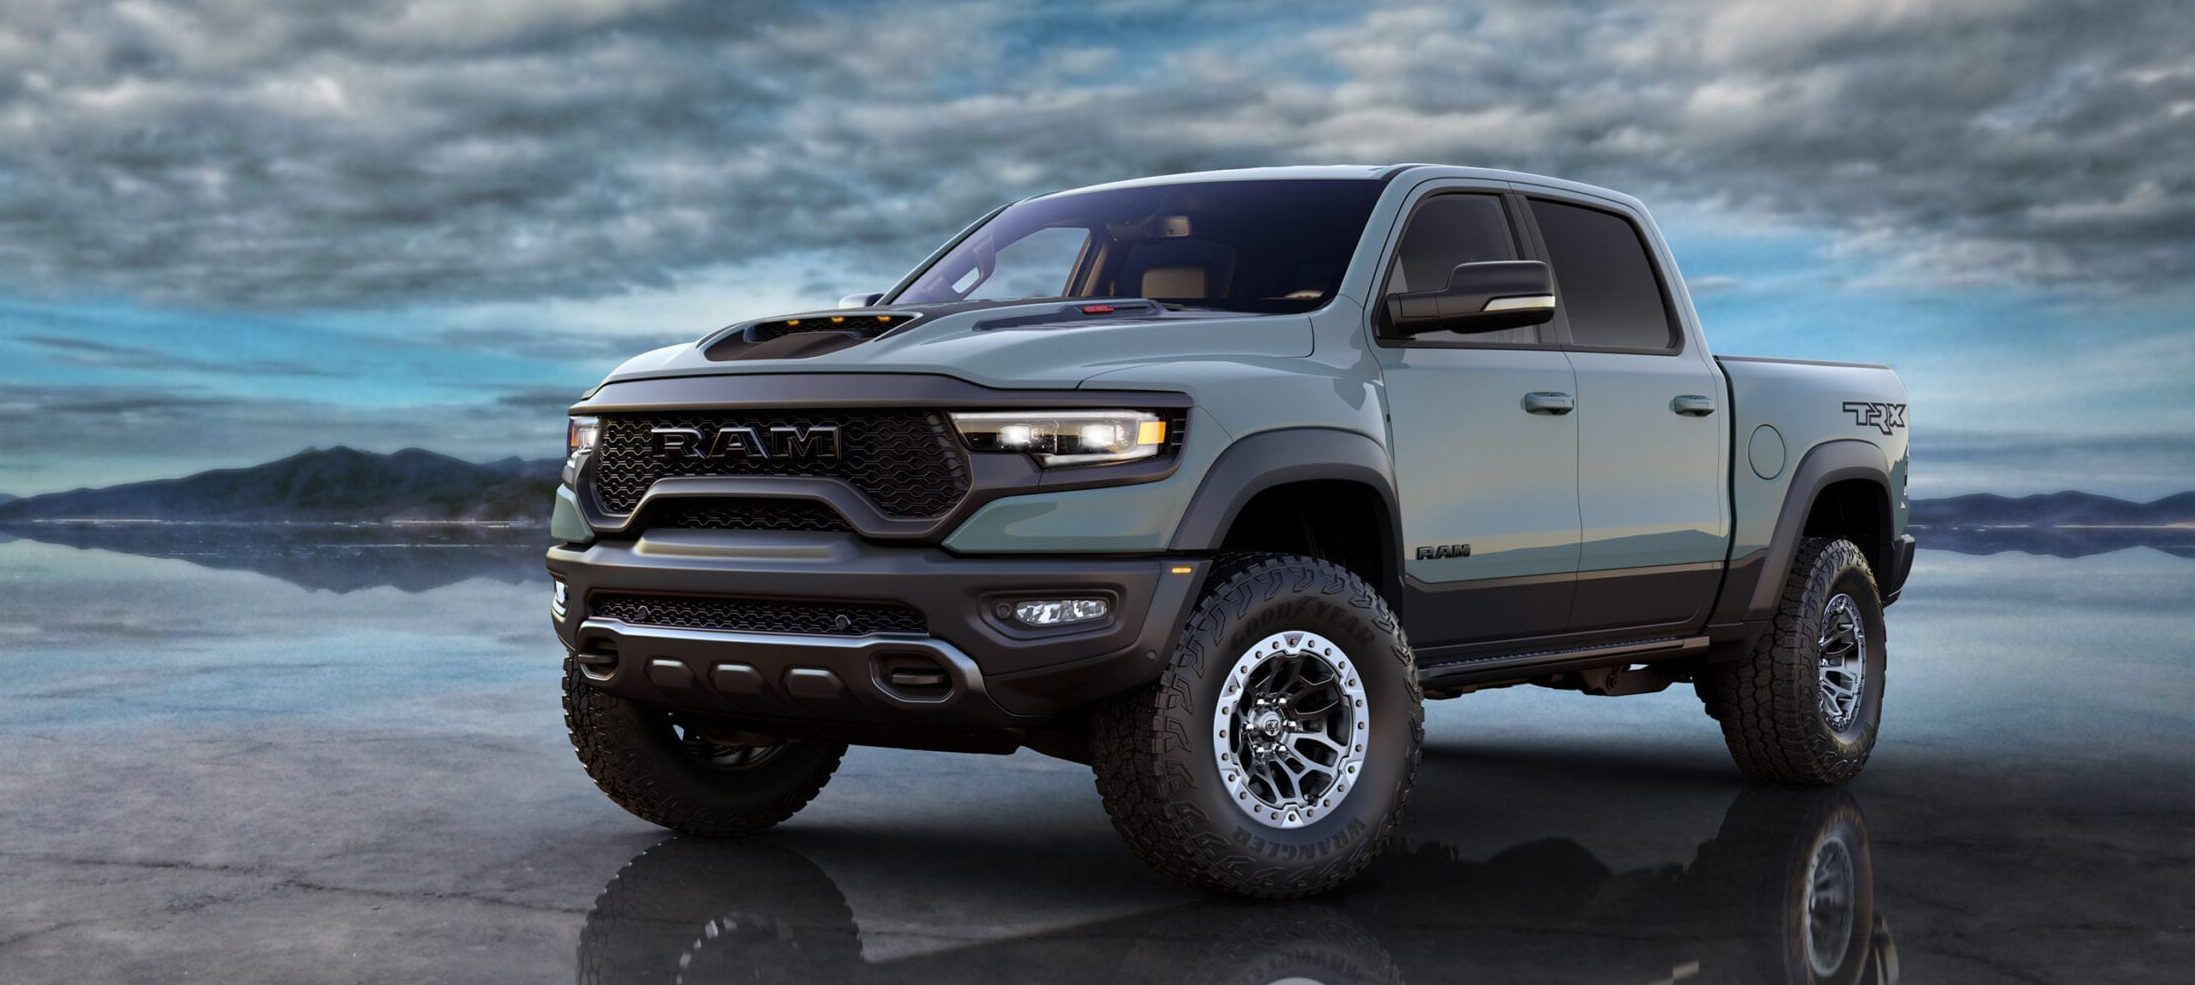 Fiat Chrysler announces Ram electric pickup truck coming - Electrek